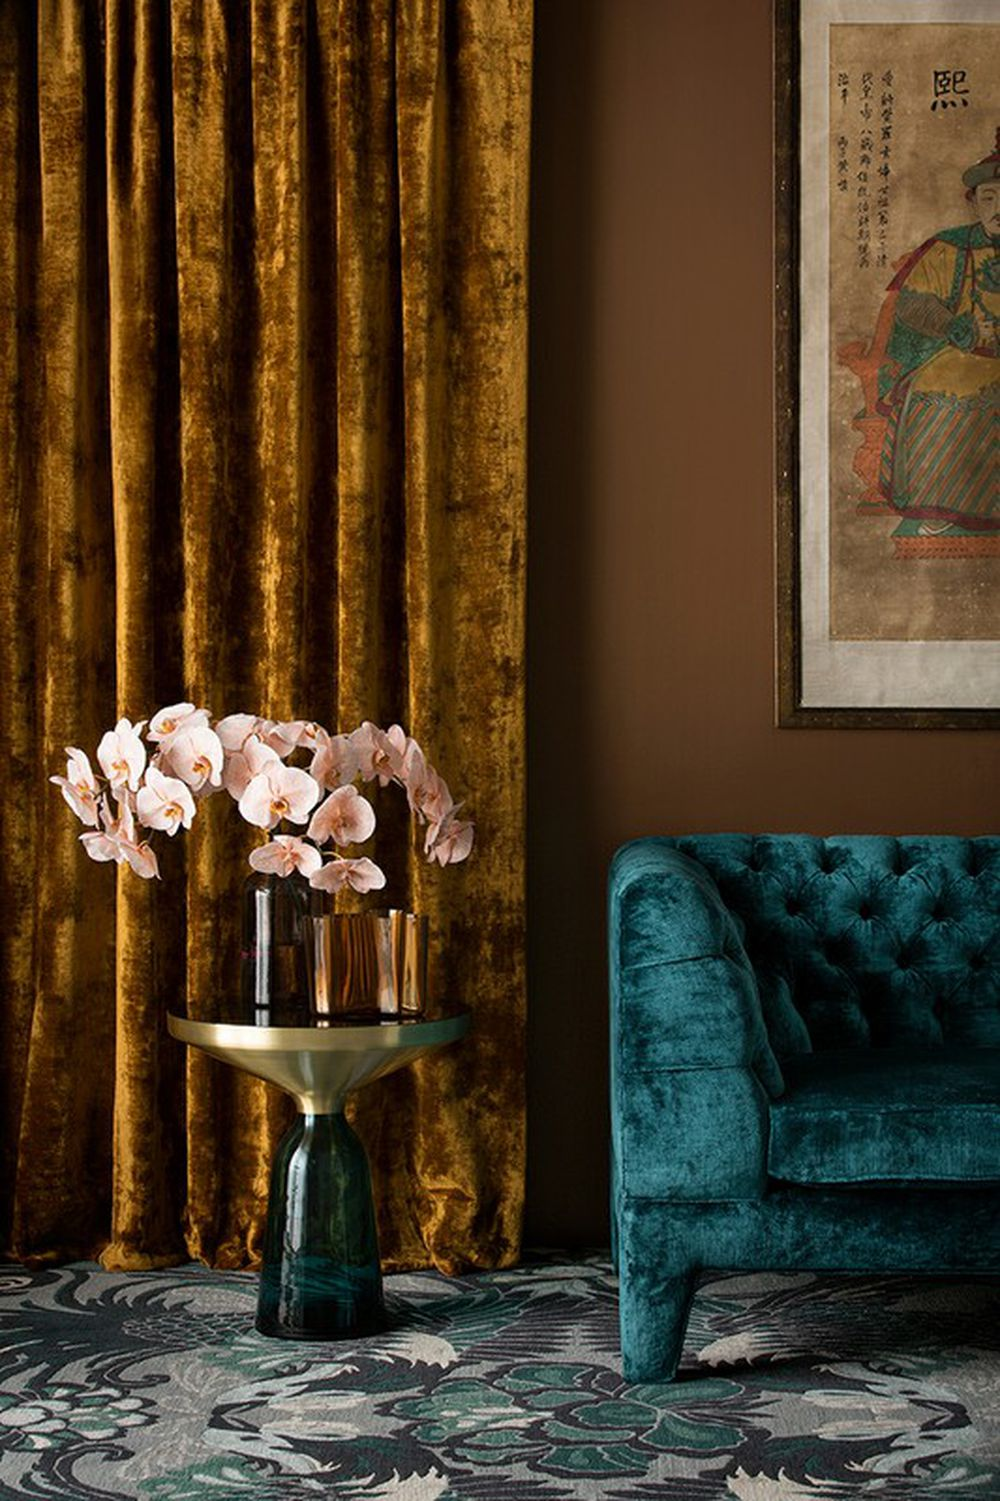 Photo of the fabric Bespoke Gilt in situ by Catherine Martin by Mokum. Use for Drapery, Upholstery Heavy Duty, Accessory. Style of Plain, Velvet